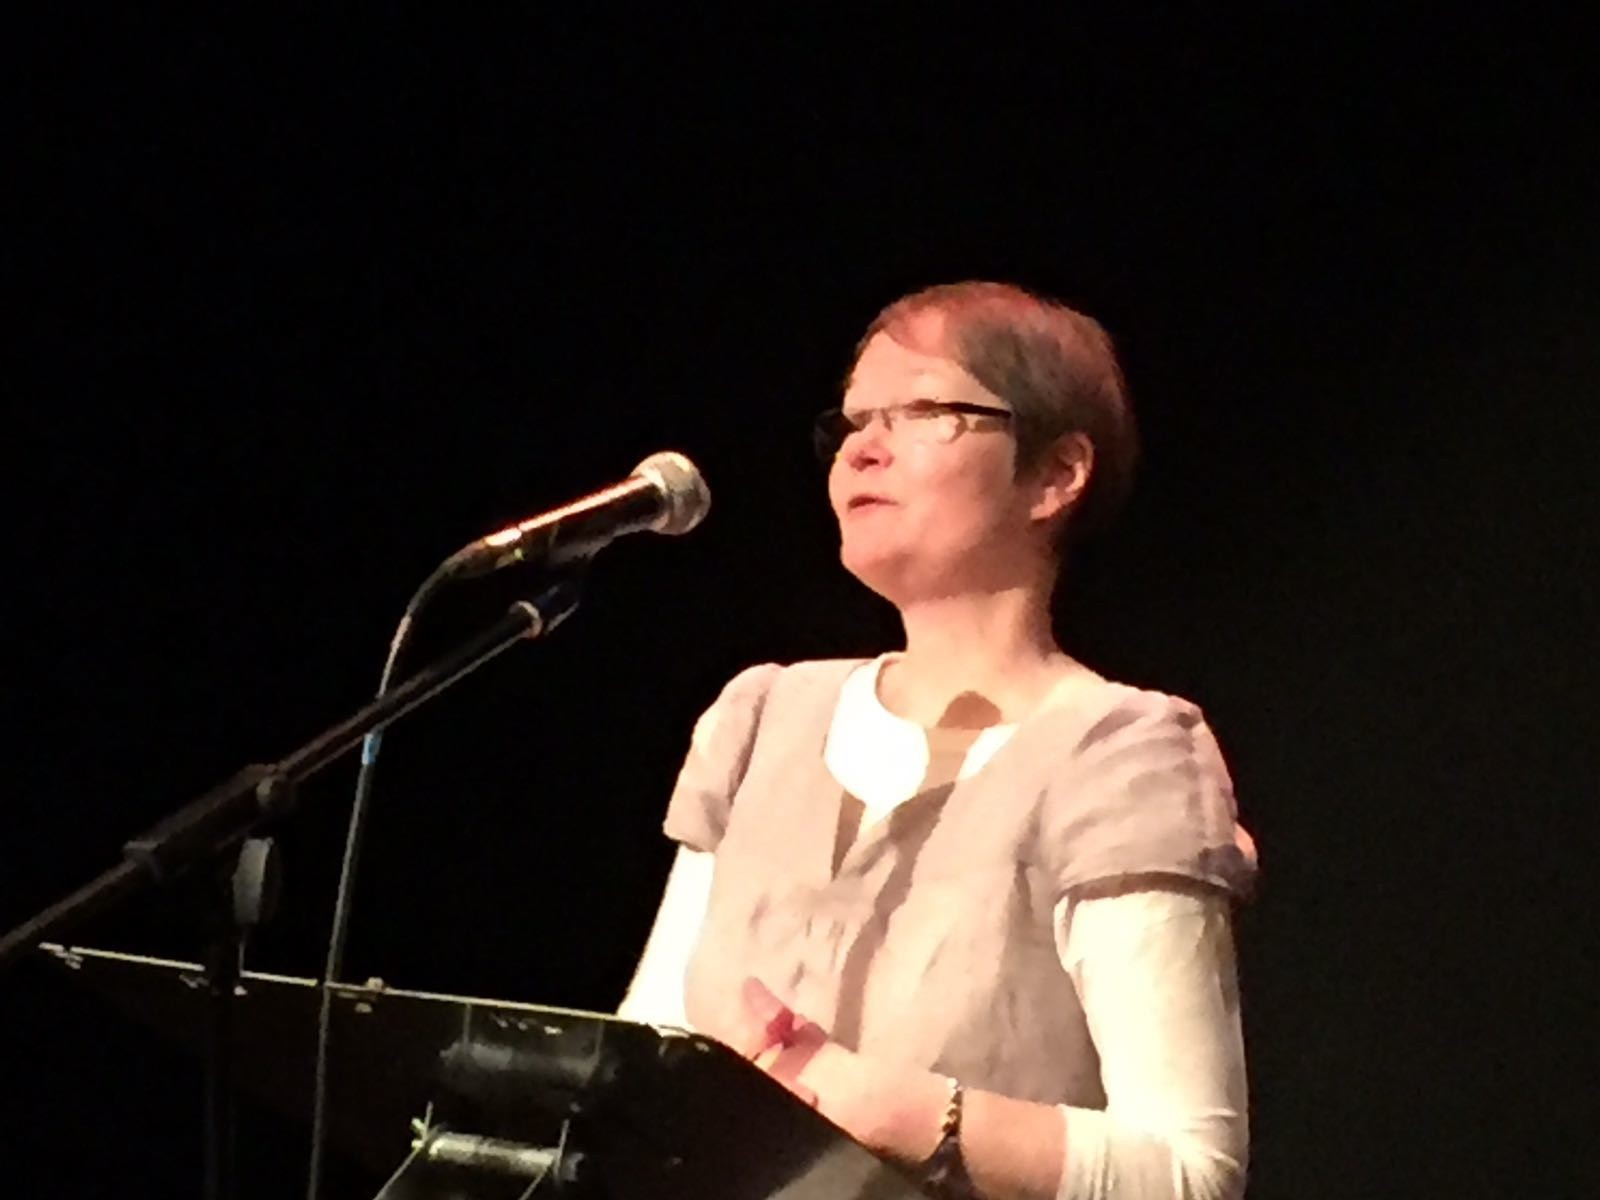 anna-larner-poetry-reading-polari-shout-festival-birmingham-mac-19-11-2016